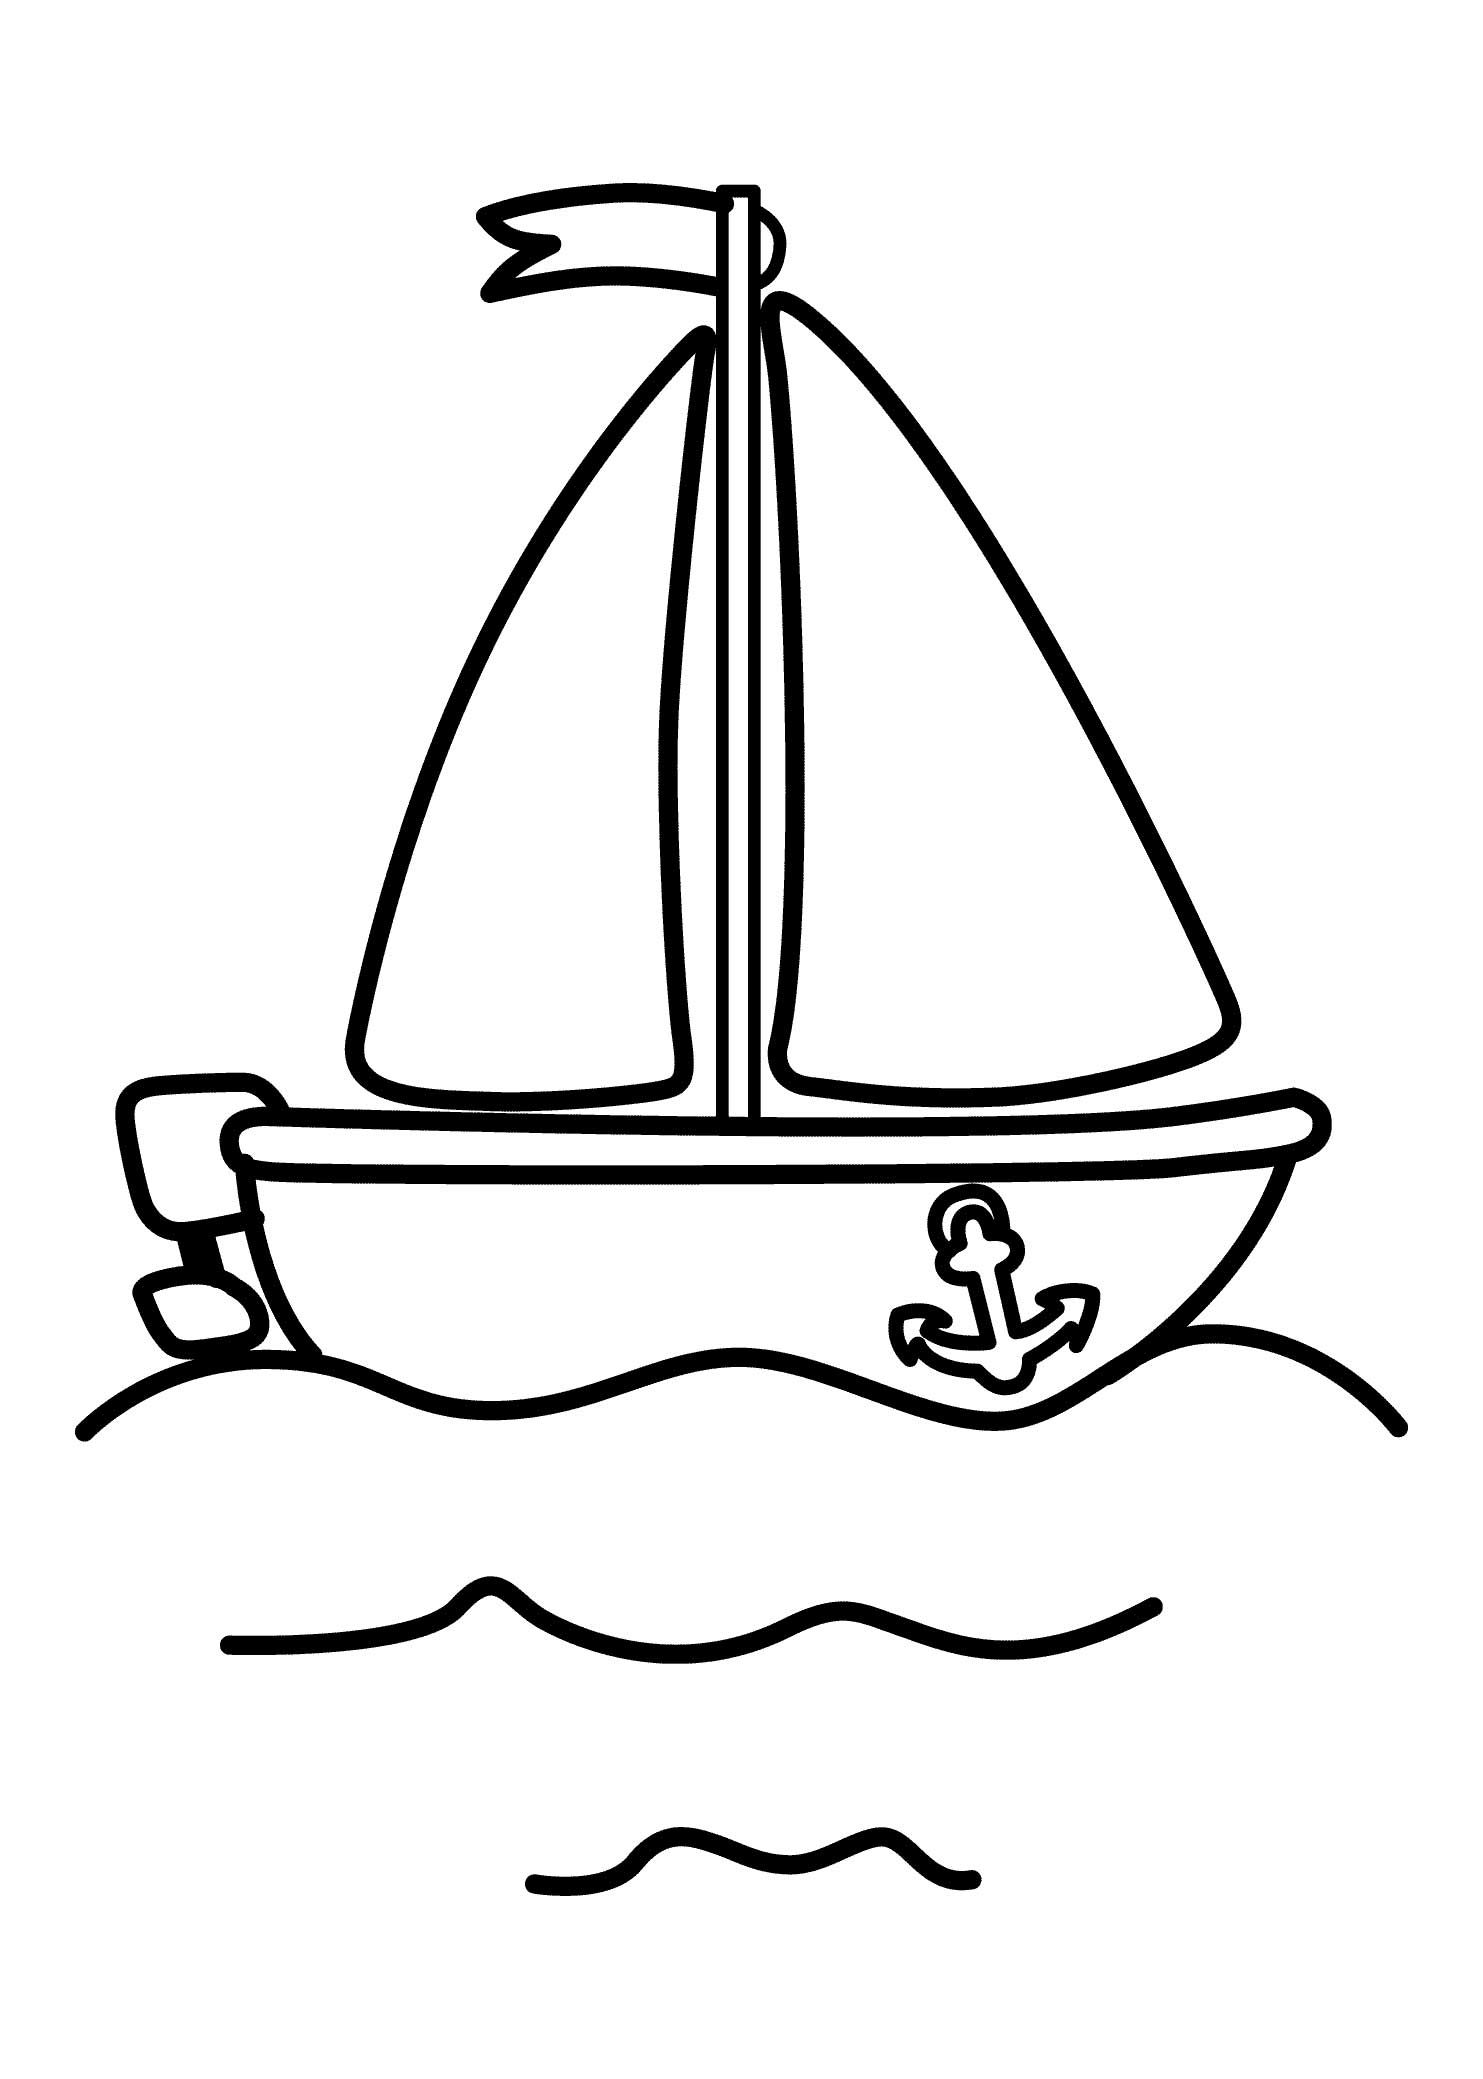 coloring book pages boat - photo#10